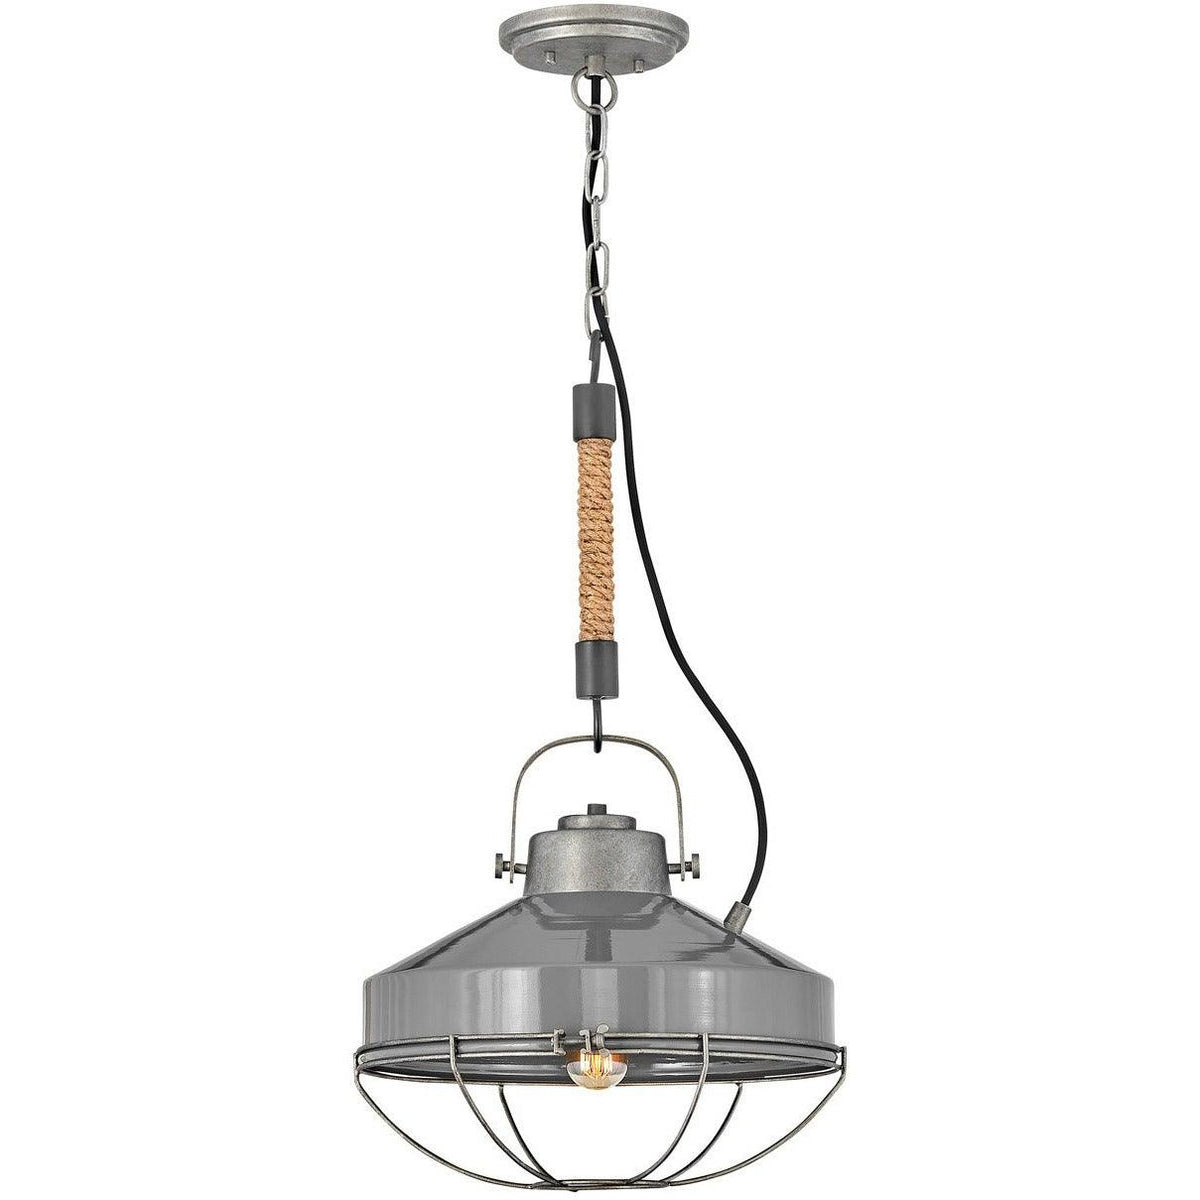 Hinkley Canada - 34907RP - One Light Pendant - Brooklyn - Rustic Pewter